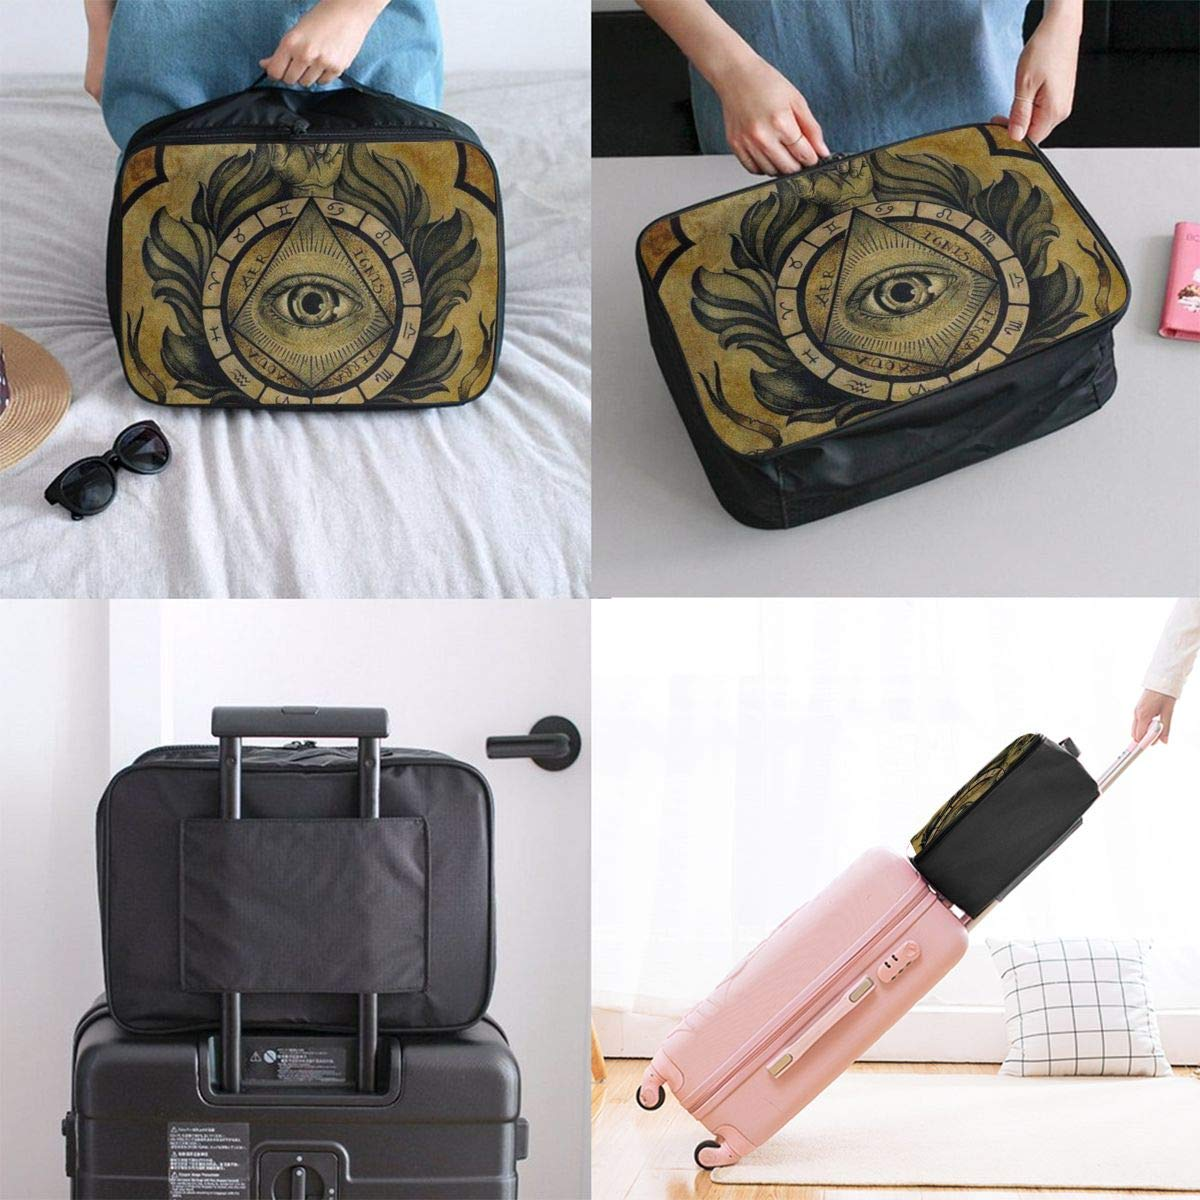 Pink Flamingos Palm Trees Travel Lightweight Waterproof Foldable Storage Portable Luggage Duffle Tote Bag Large Capacity In Trolley Handle Bags 6x11x15 Inch